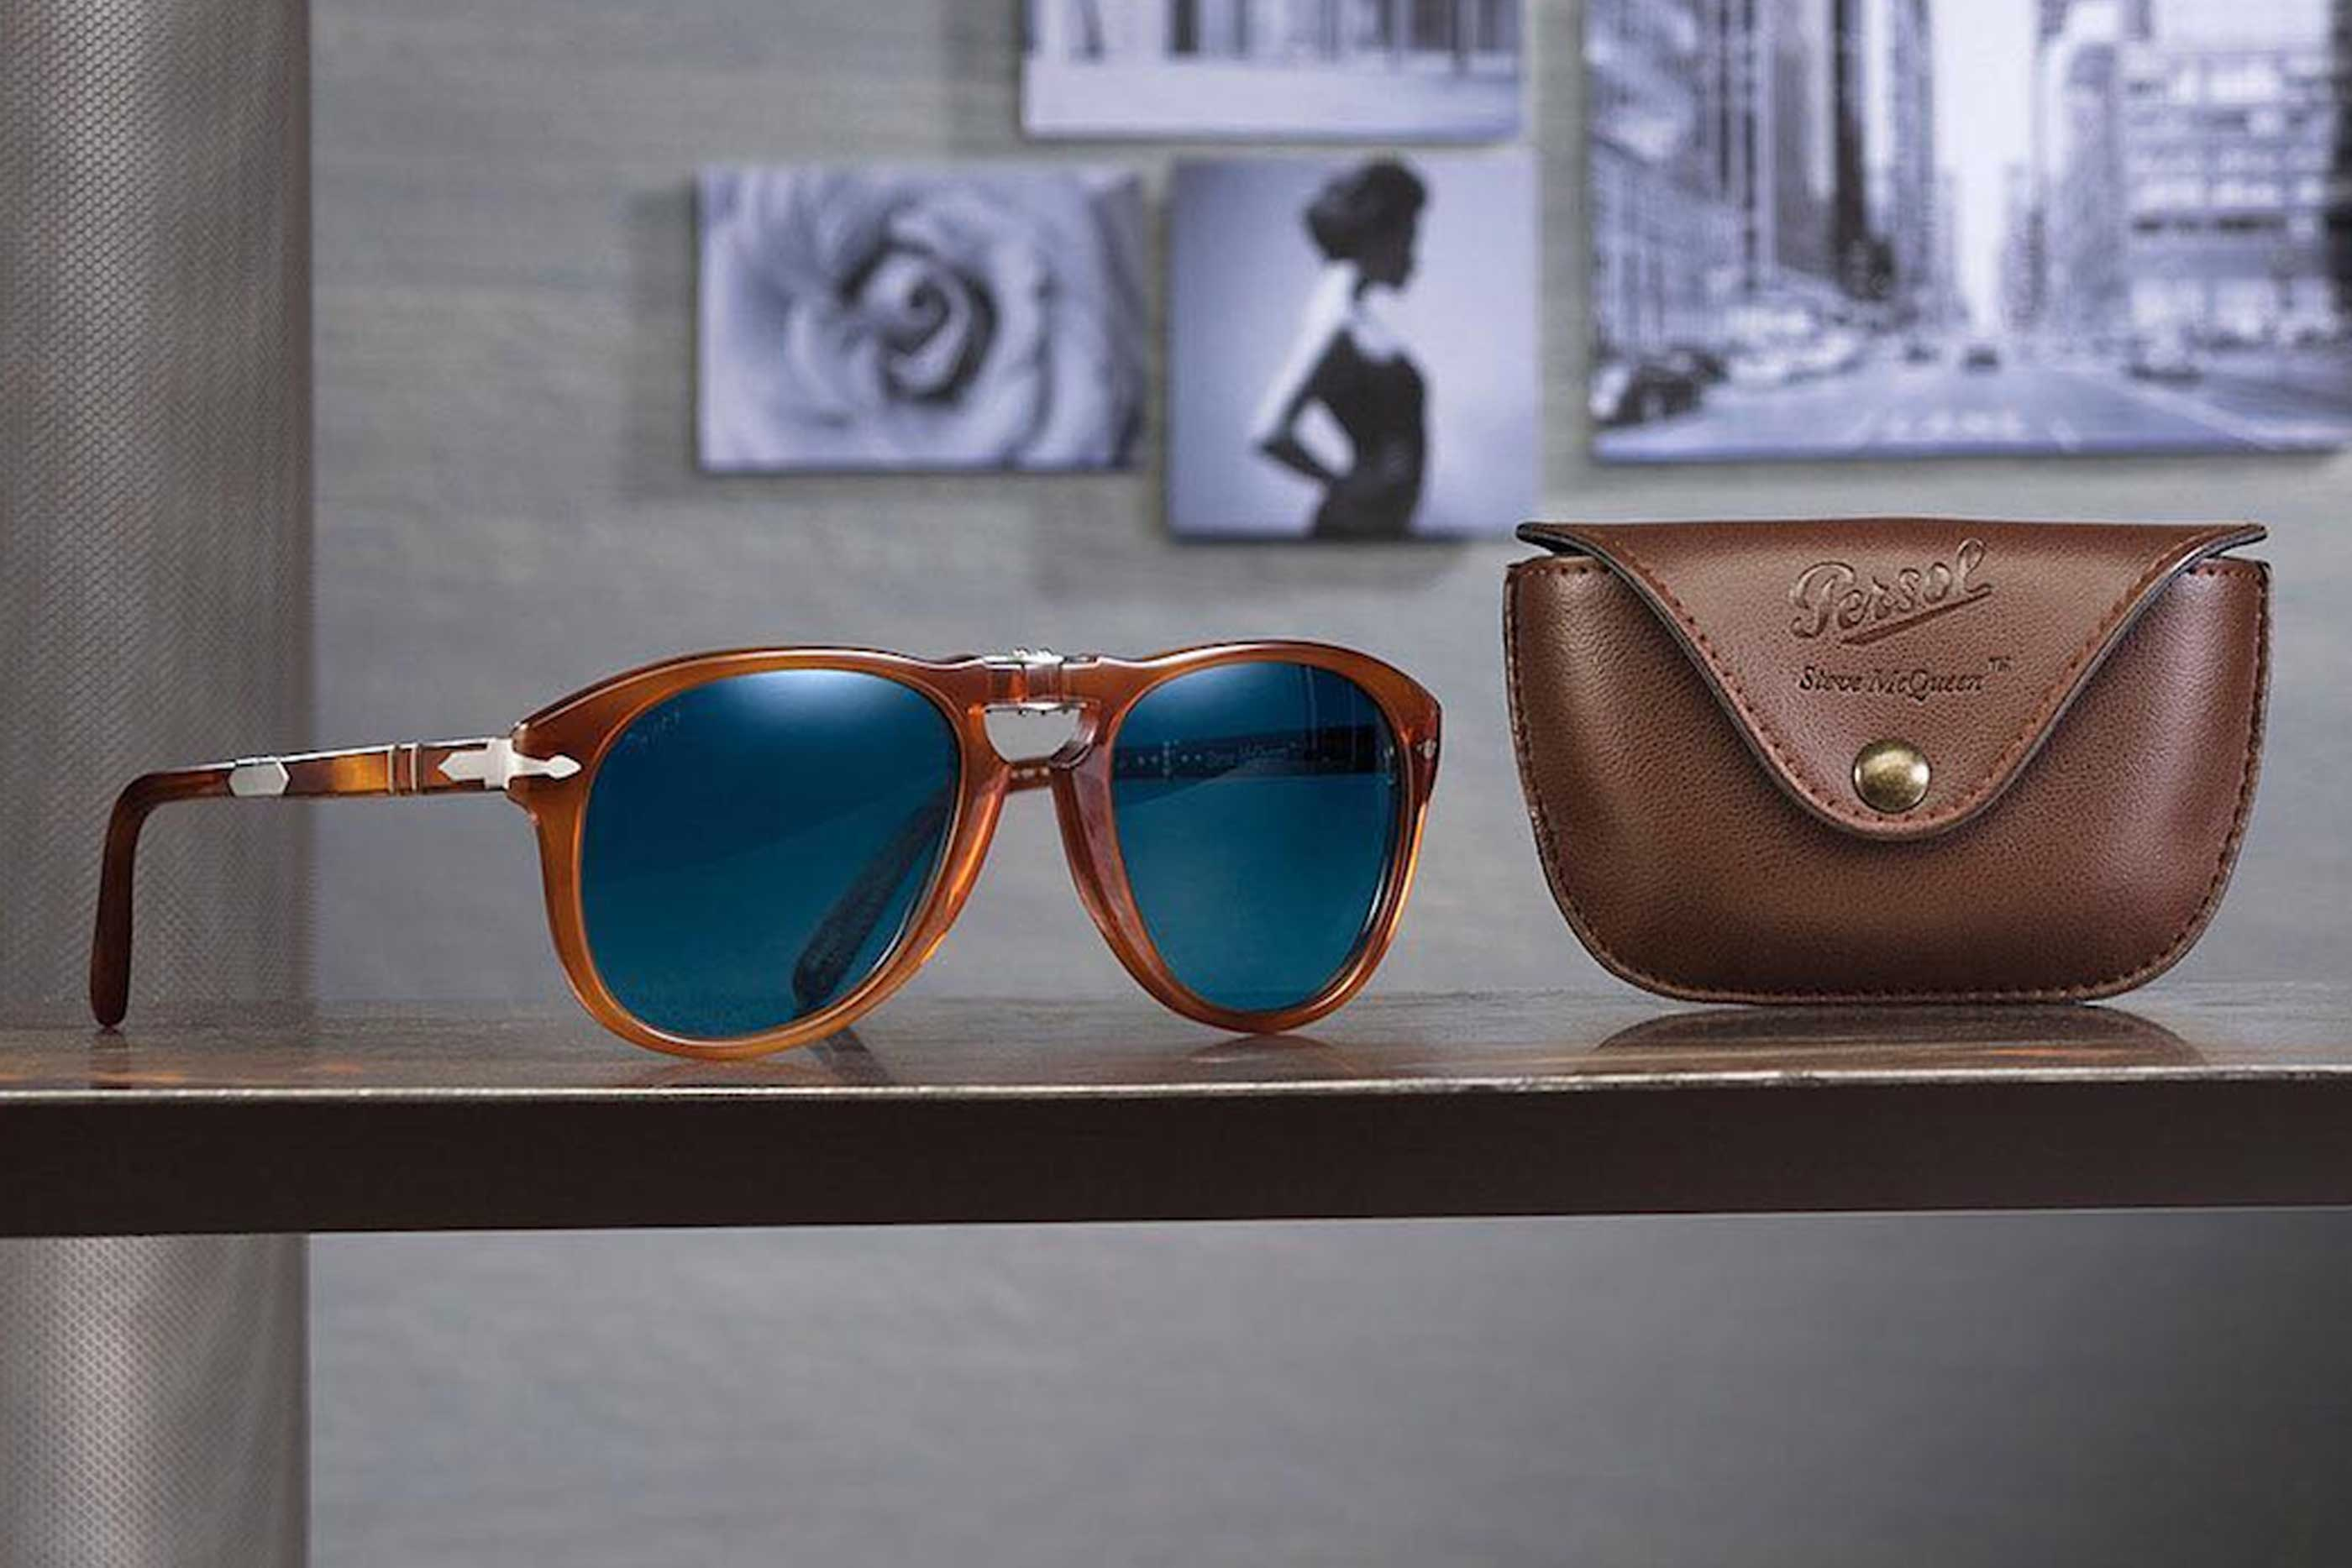 1fb3e58511926 ▷ Persol sunglasses by Steve McQueen – OpticalH